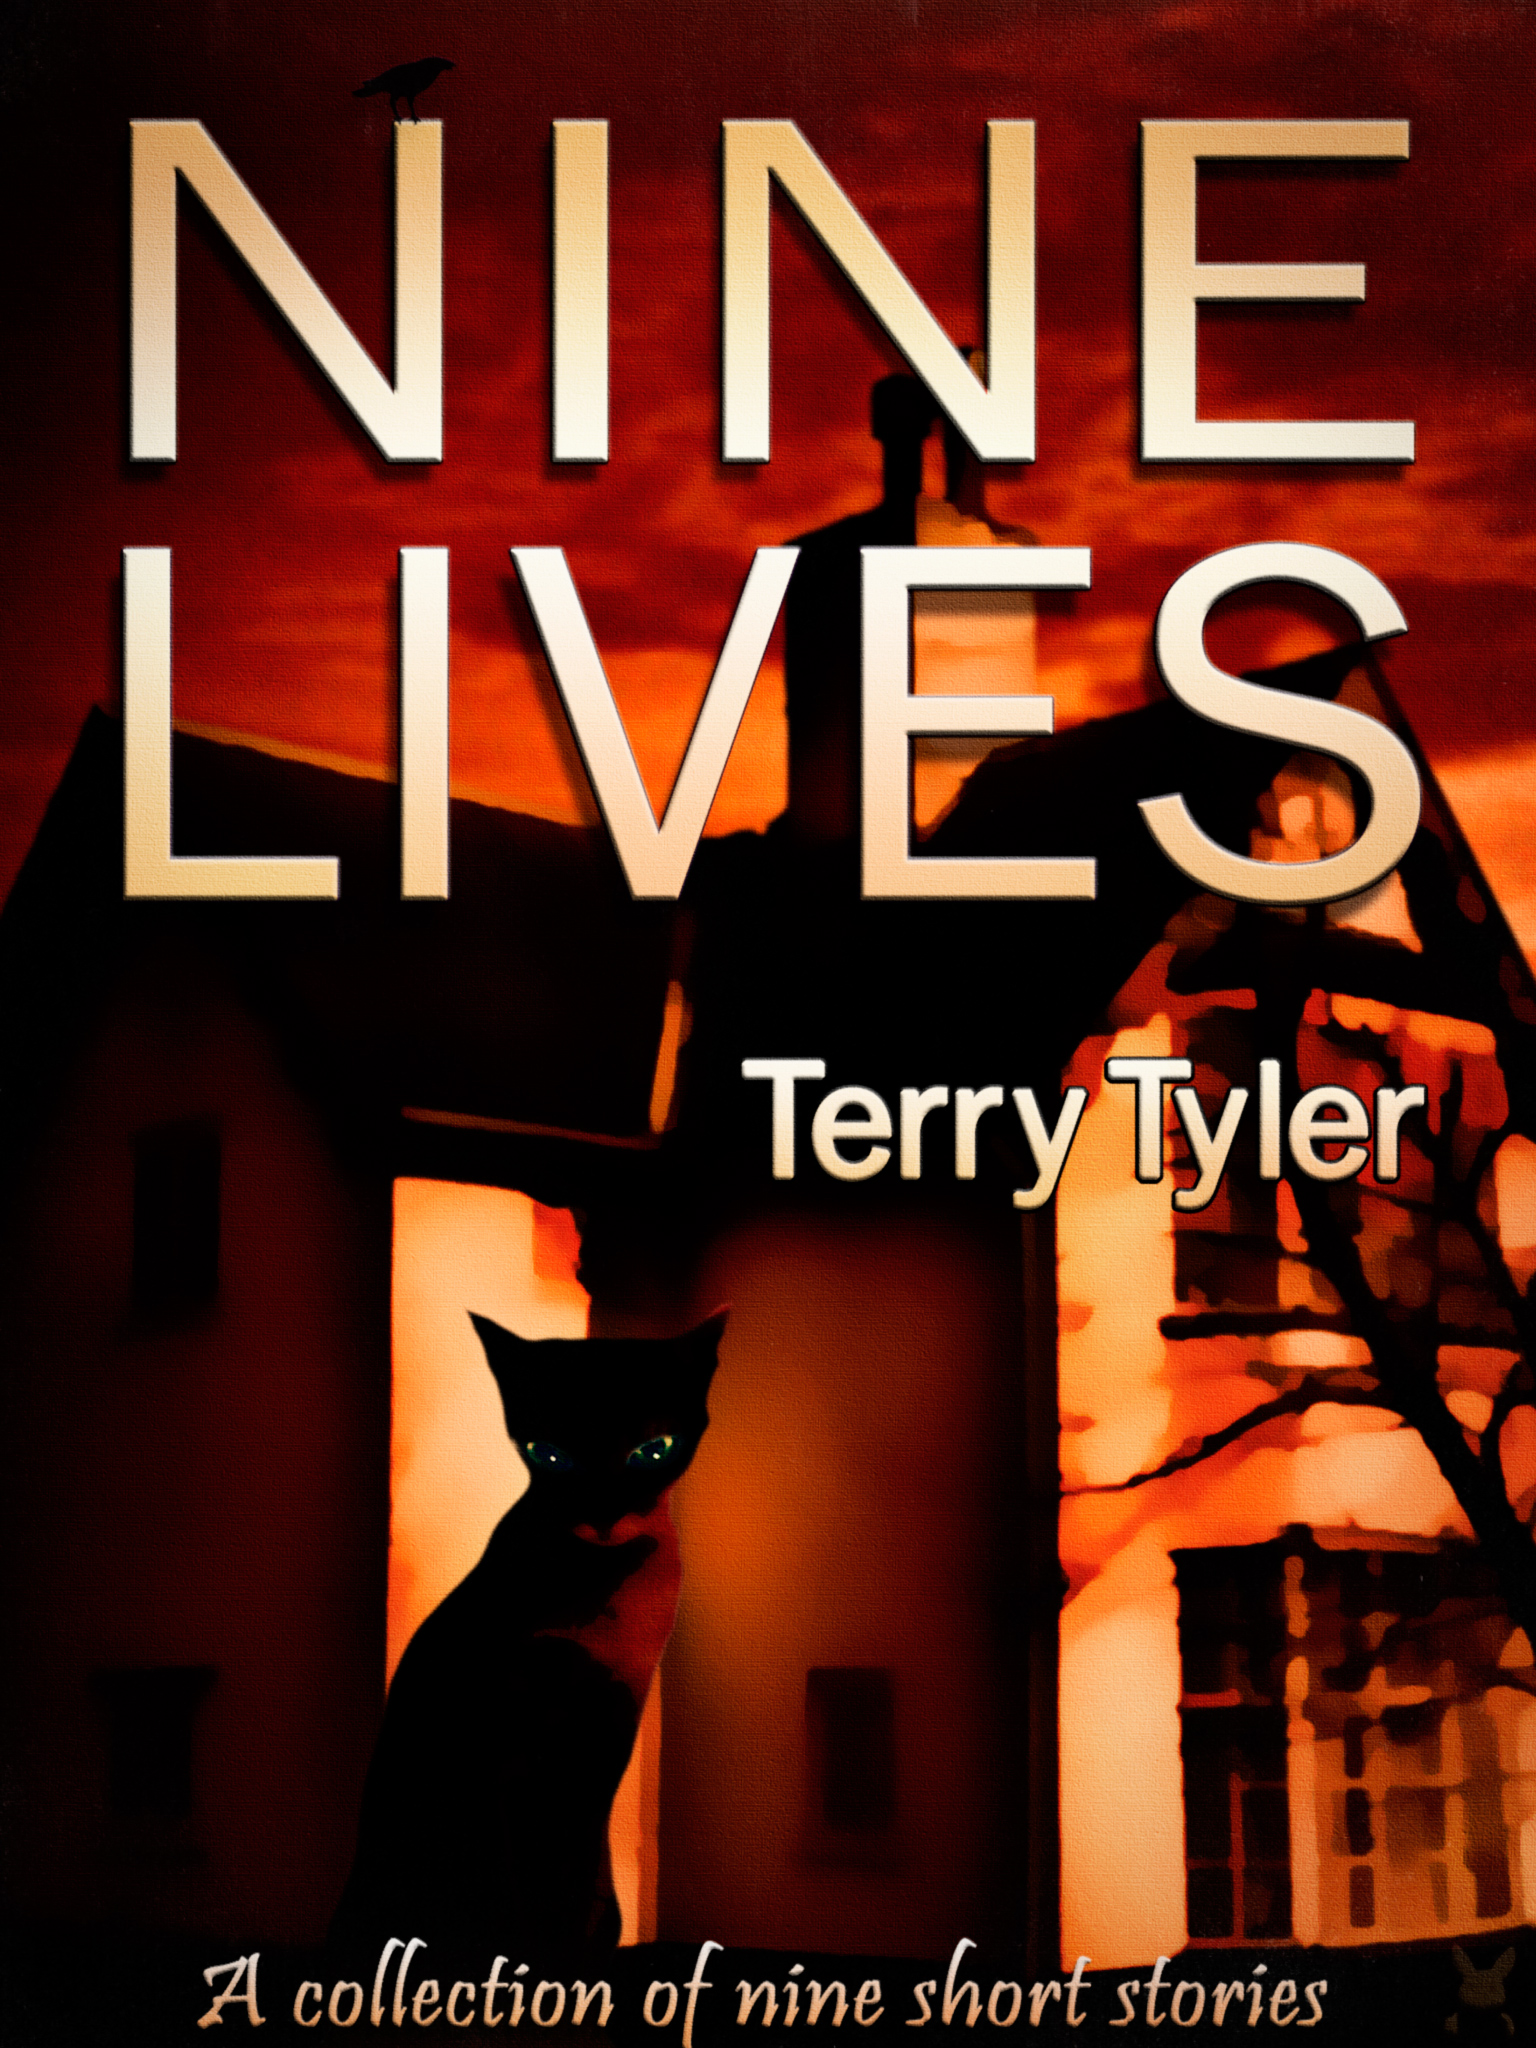 https://aloverofbooks.files.wordpress.com/2013/11/nine-lives.jpg